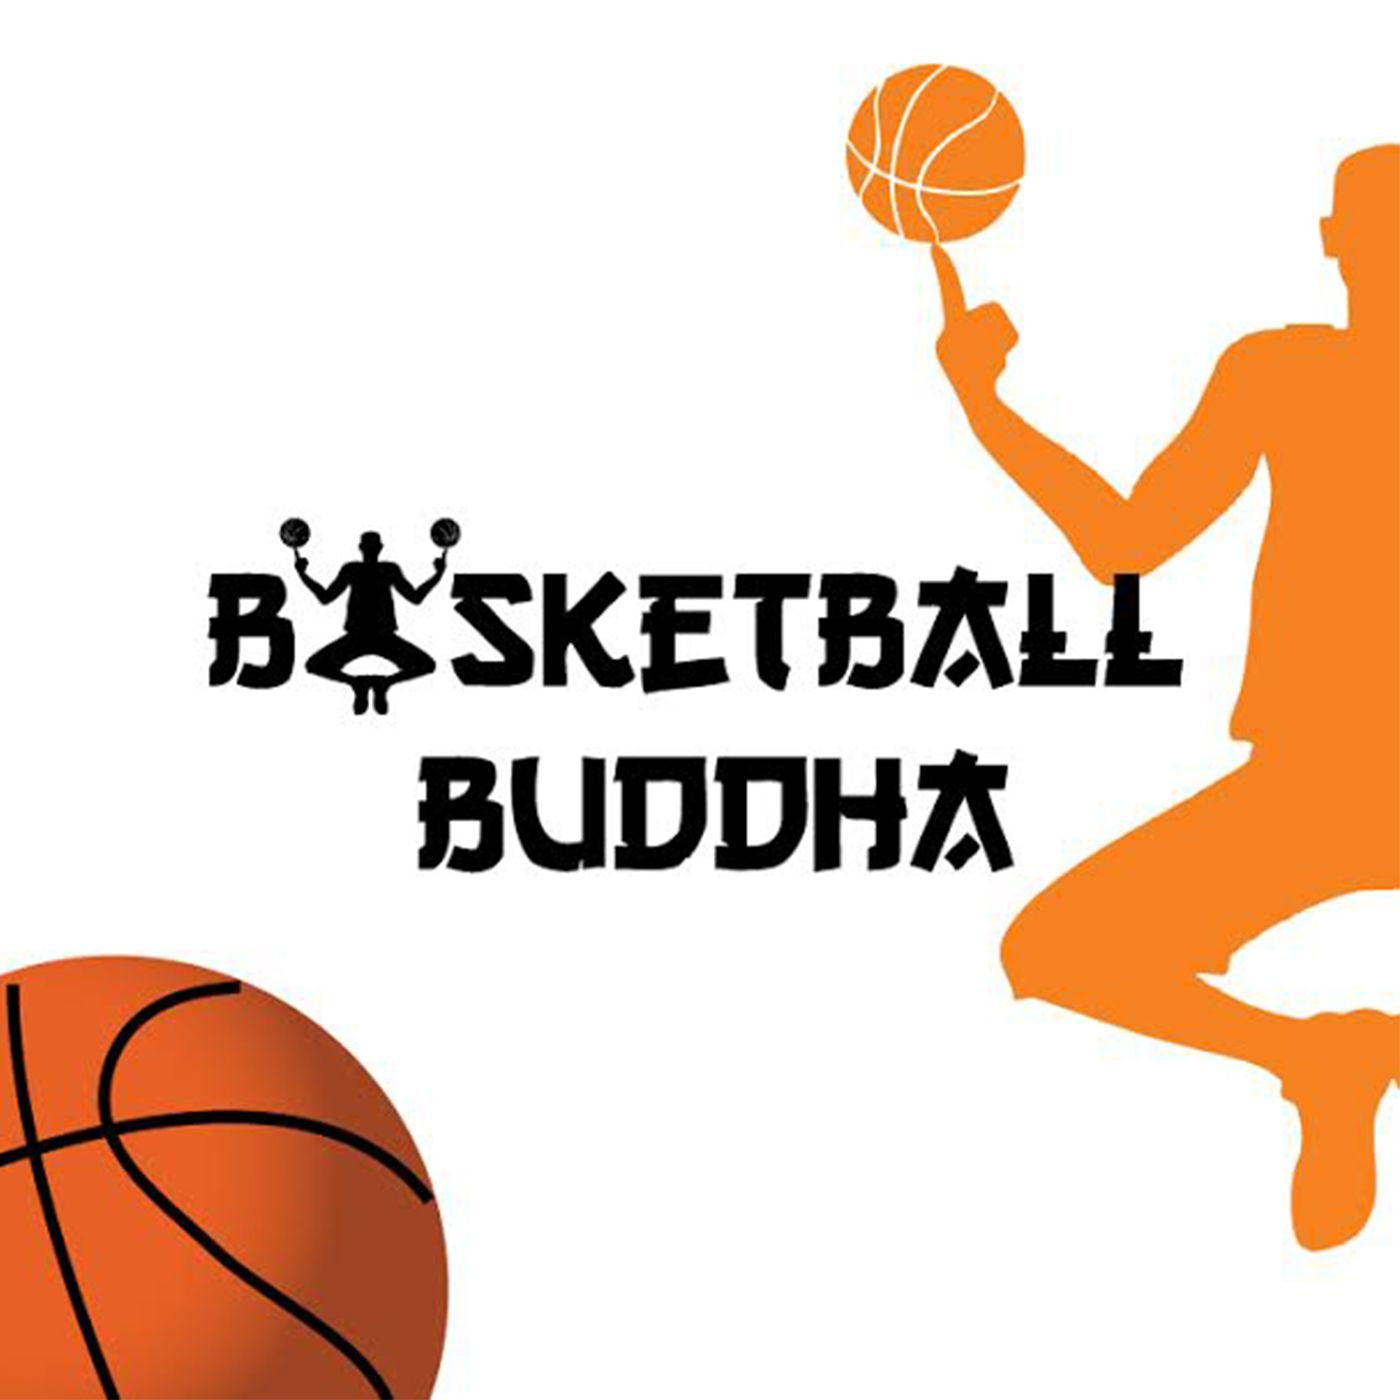 Basketball Buddha Podcast